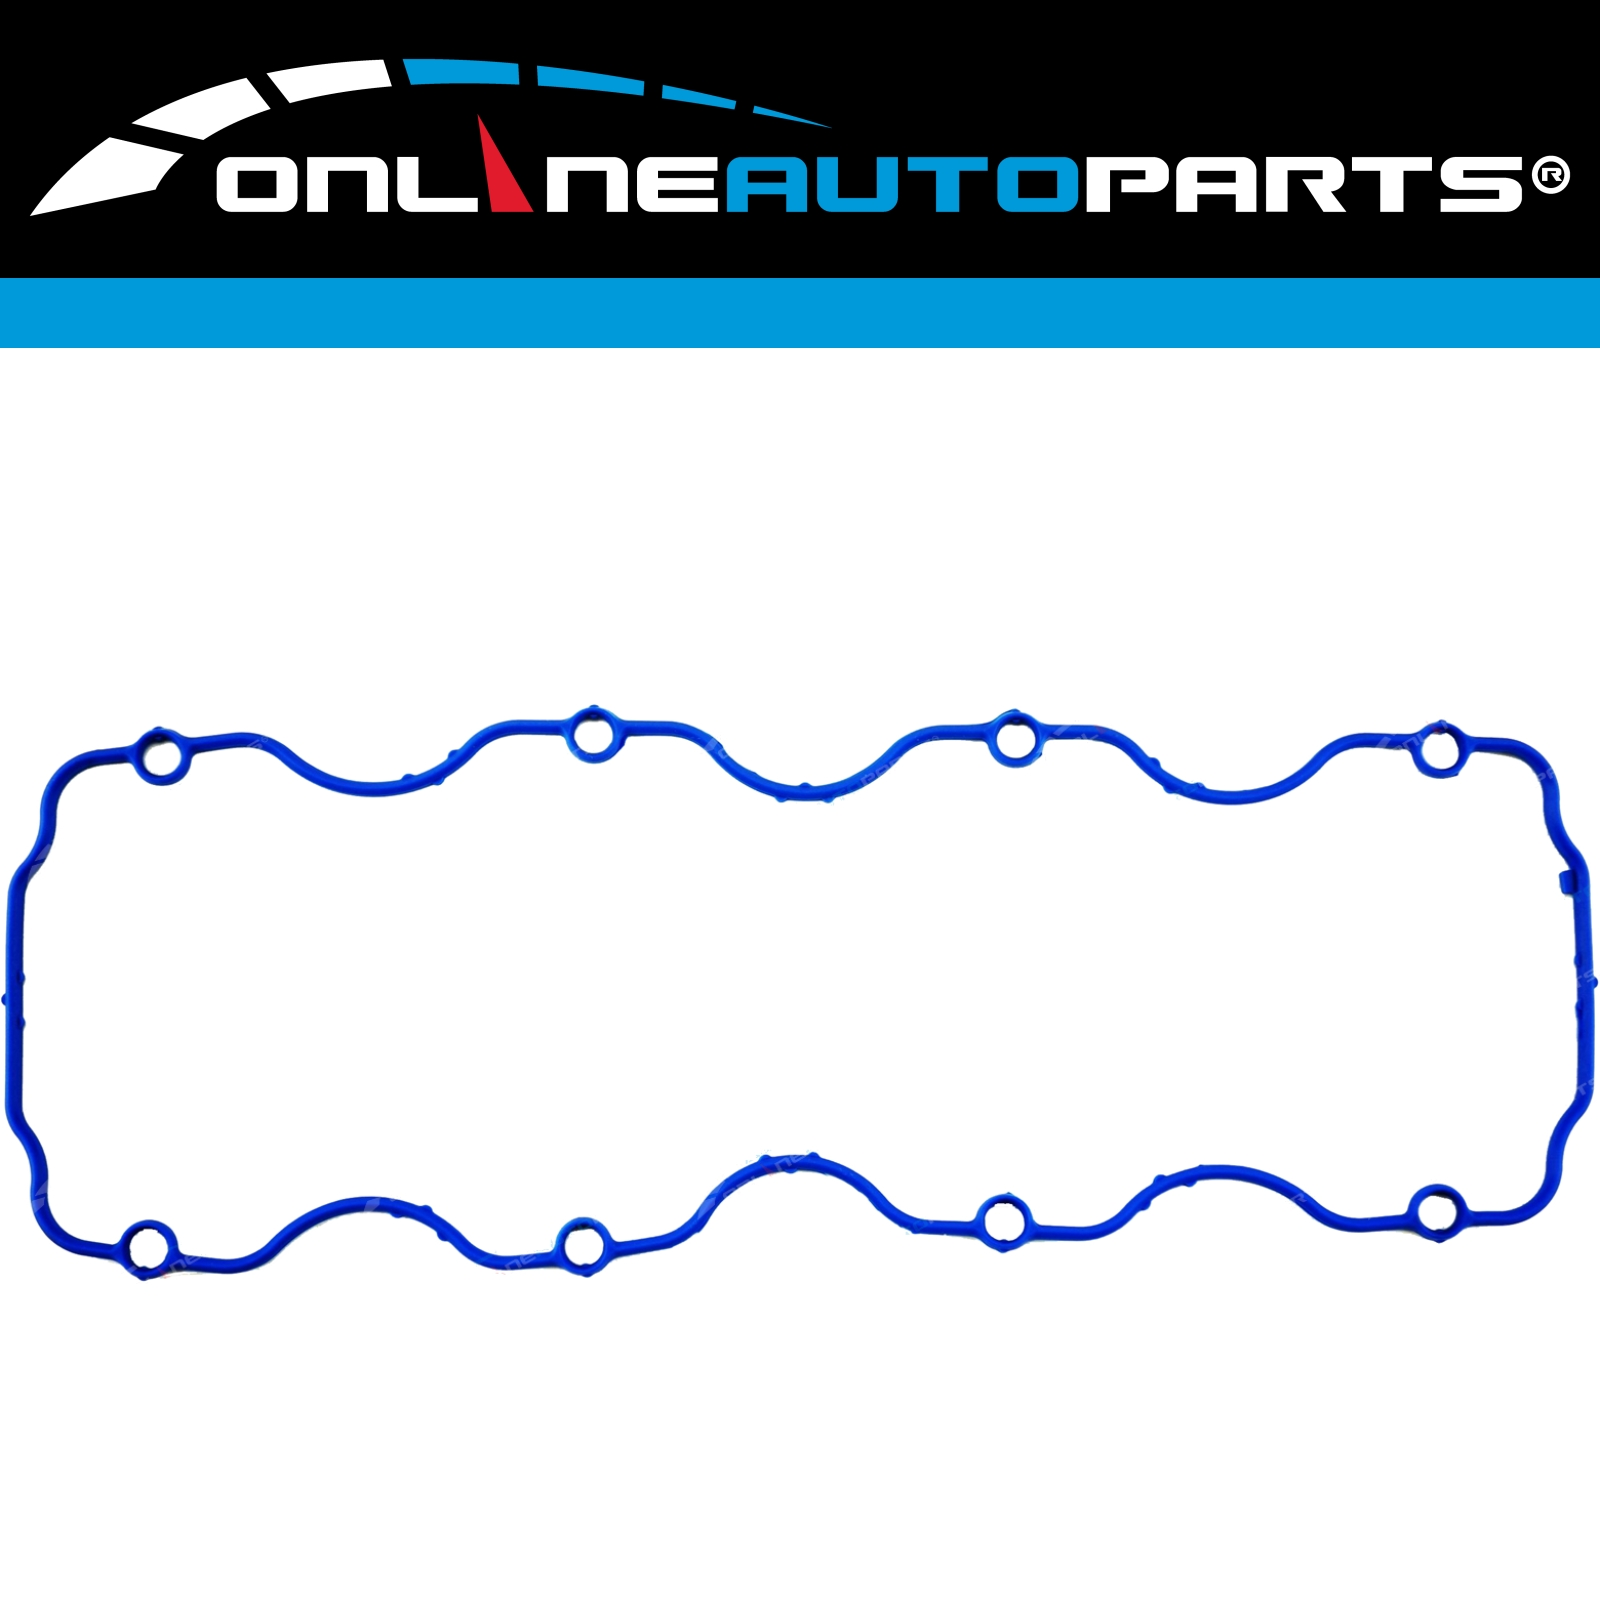 Tappet Rocker Valve Cover Gasket suits Daewoo Lanos 4cyl A15SMS 1.5L 1997~2003